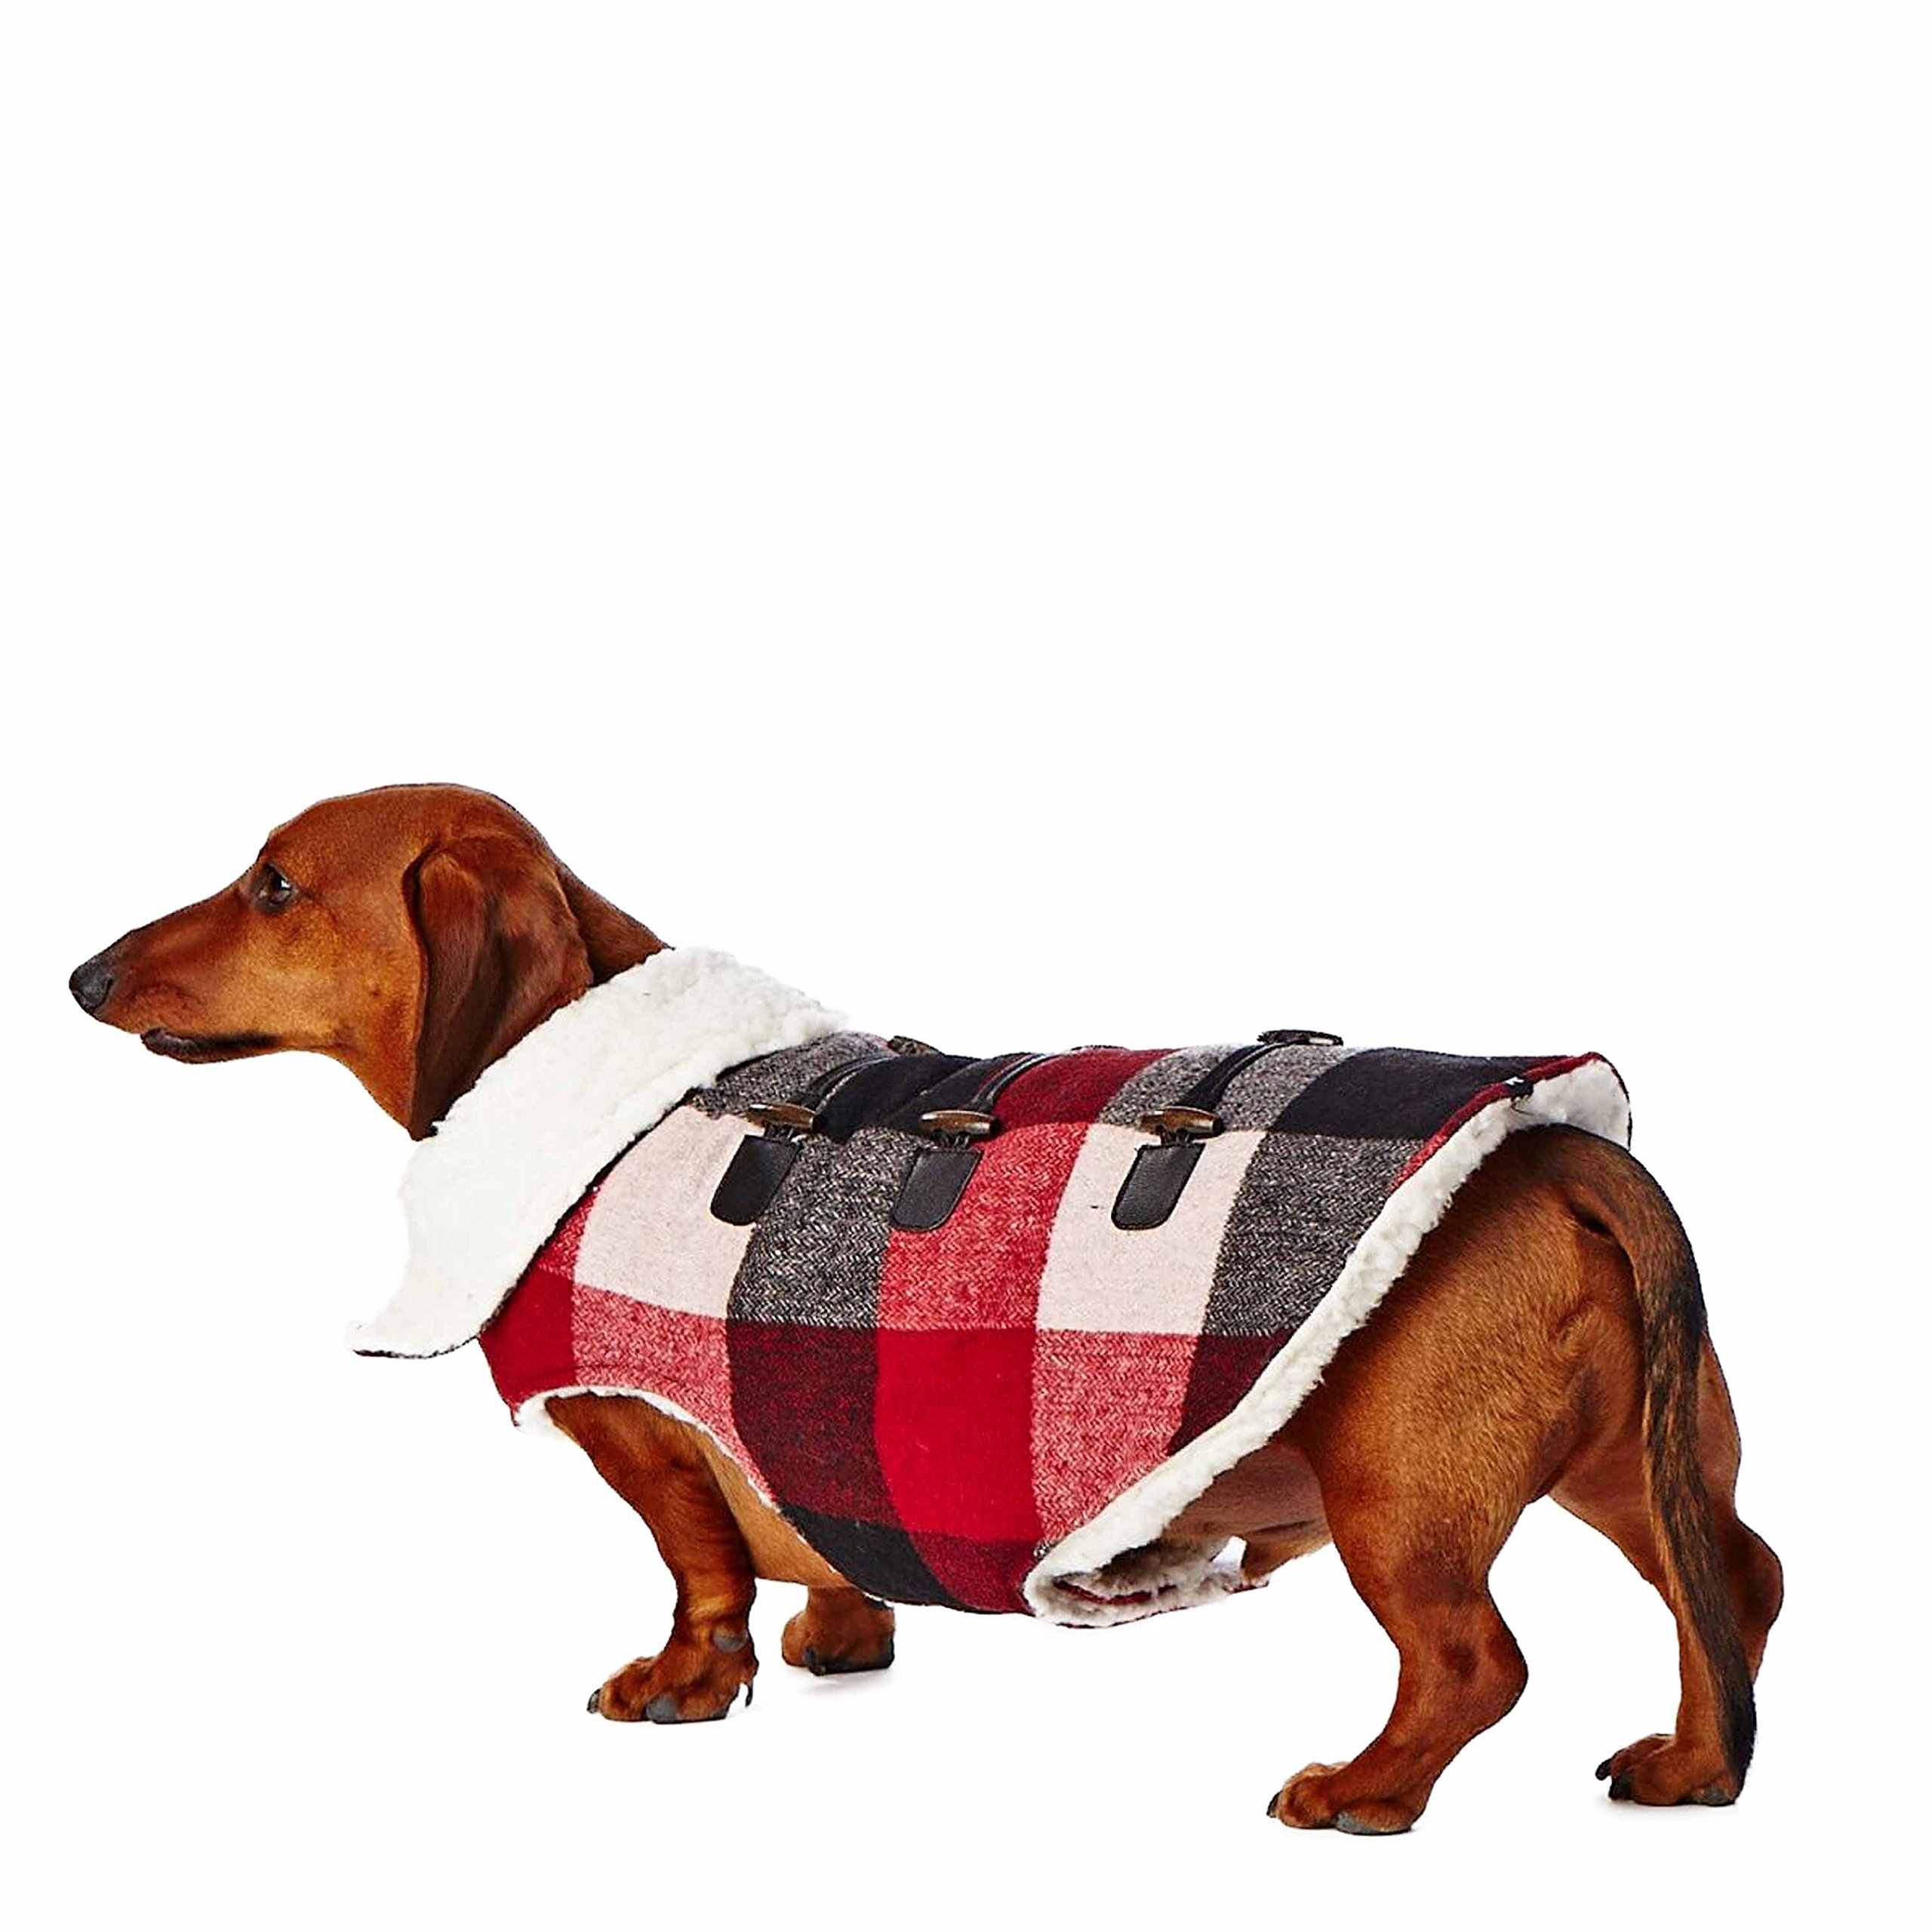 Hotel Doggy Plaid Coat with Toggles, Cranberry Red, Small